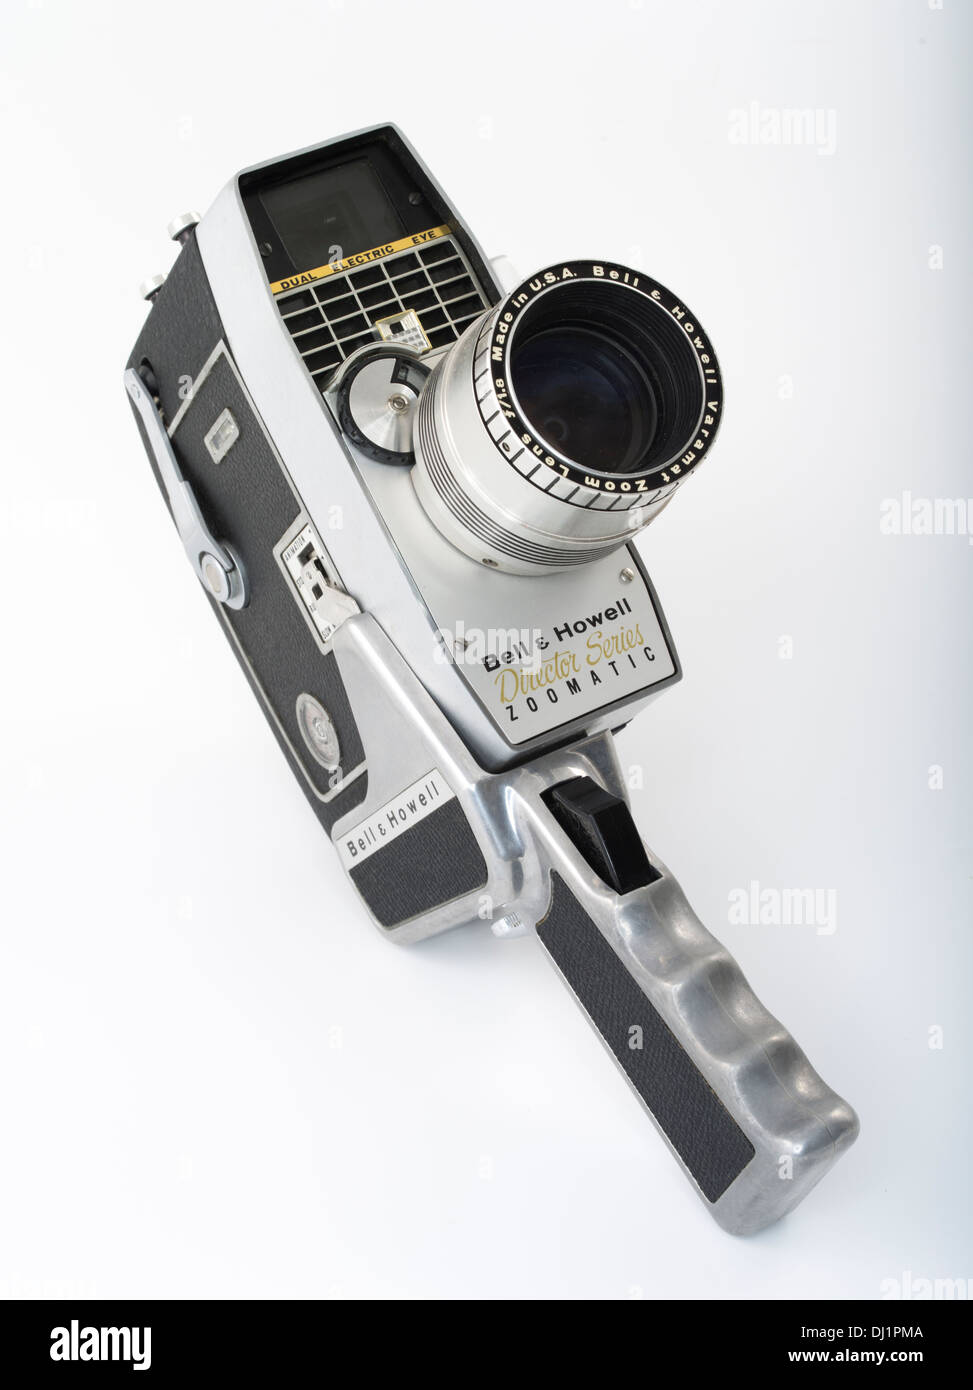 Bell & Howell Model 414PD Director Series Zoomatic 8mm Film Camera as used in ZAPRUDER film of assassination of JFK - Stock Image